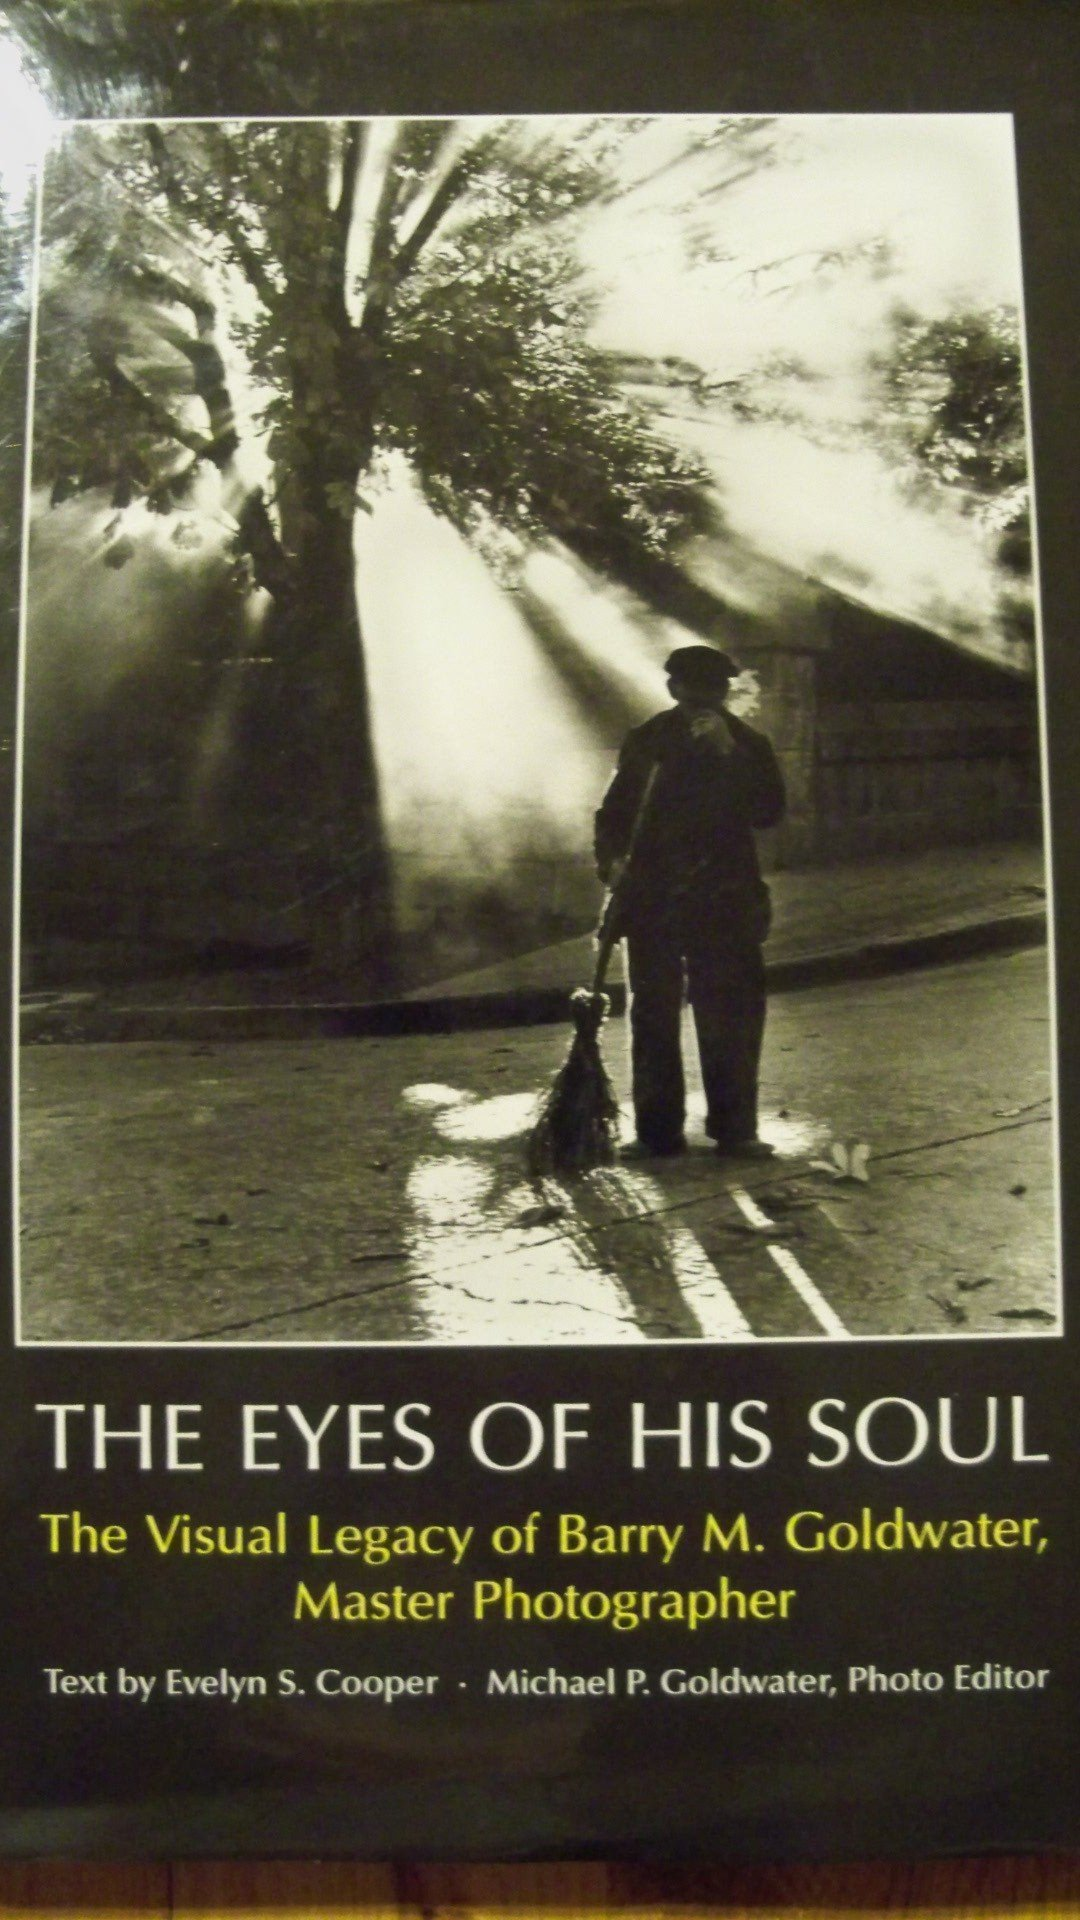 The Eyes of His Soul: The Visual Legacy of Barry M. Goldwater, Master Photographer ebook